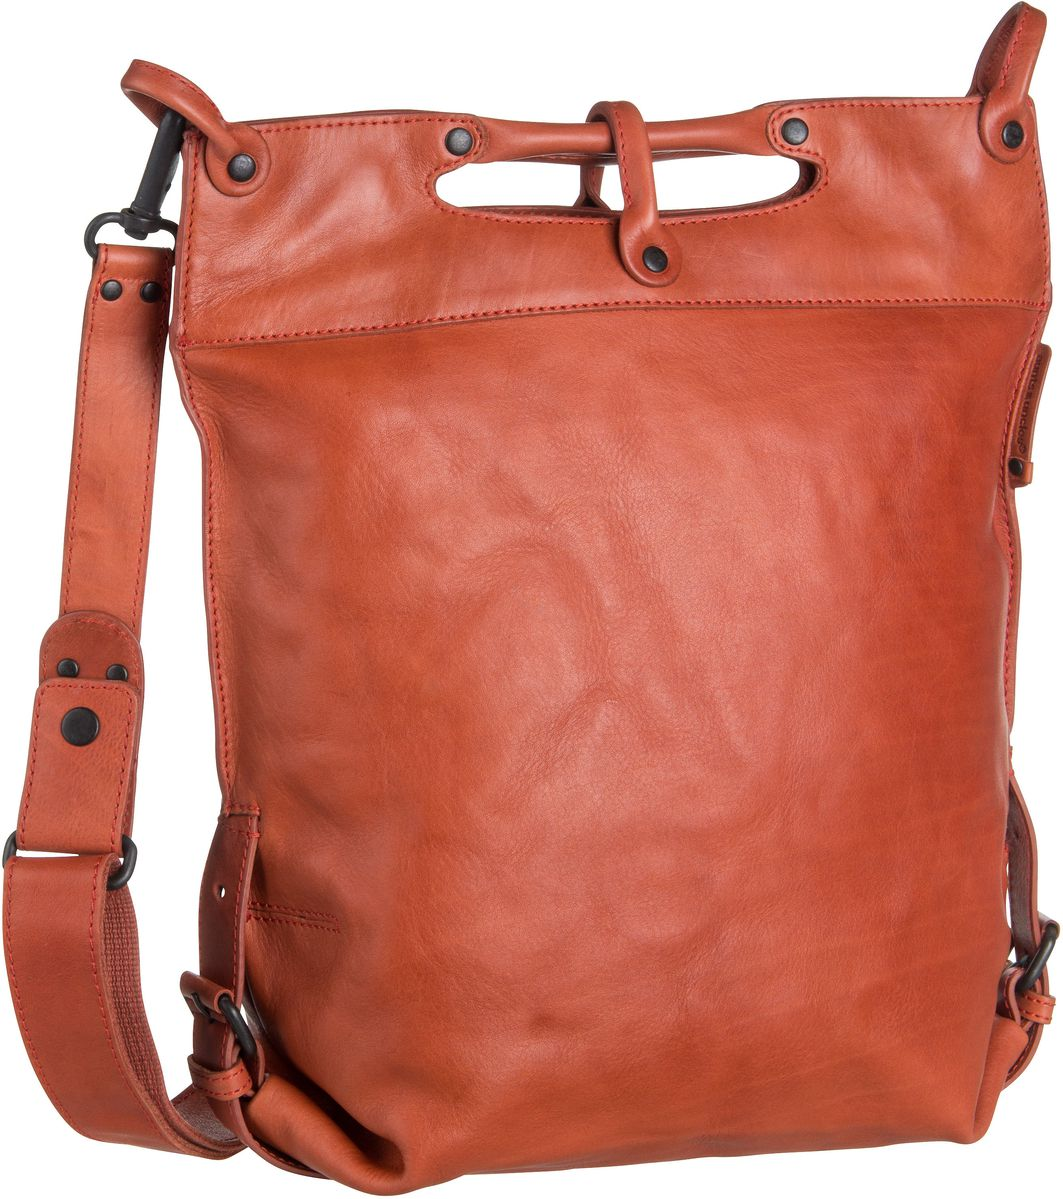 Handtasche Mrs. Pancake Burnt Orange